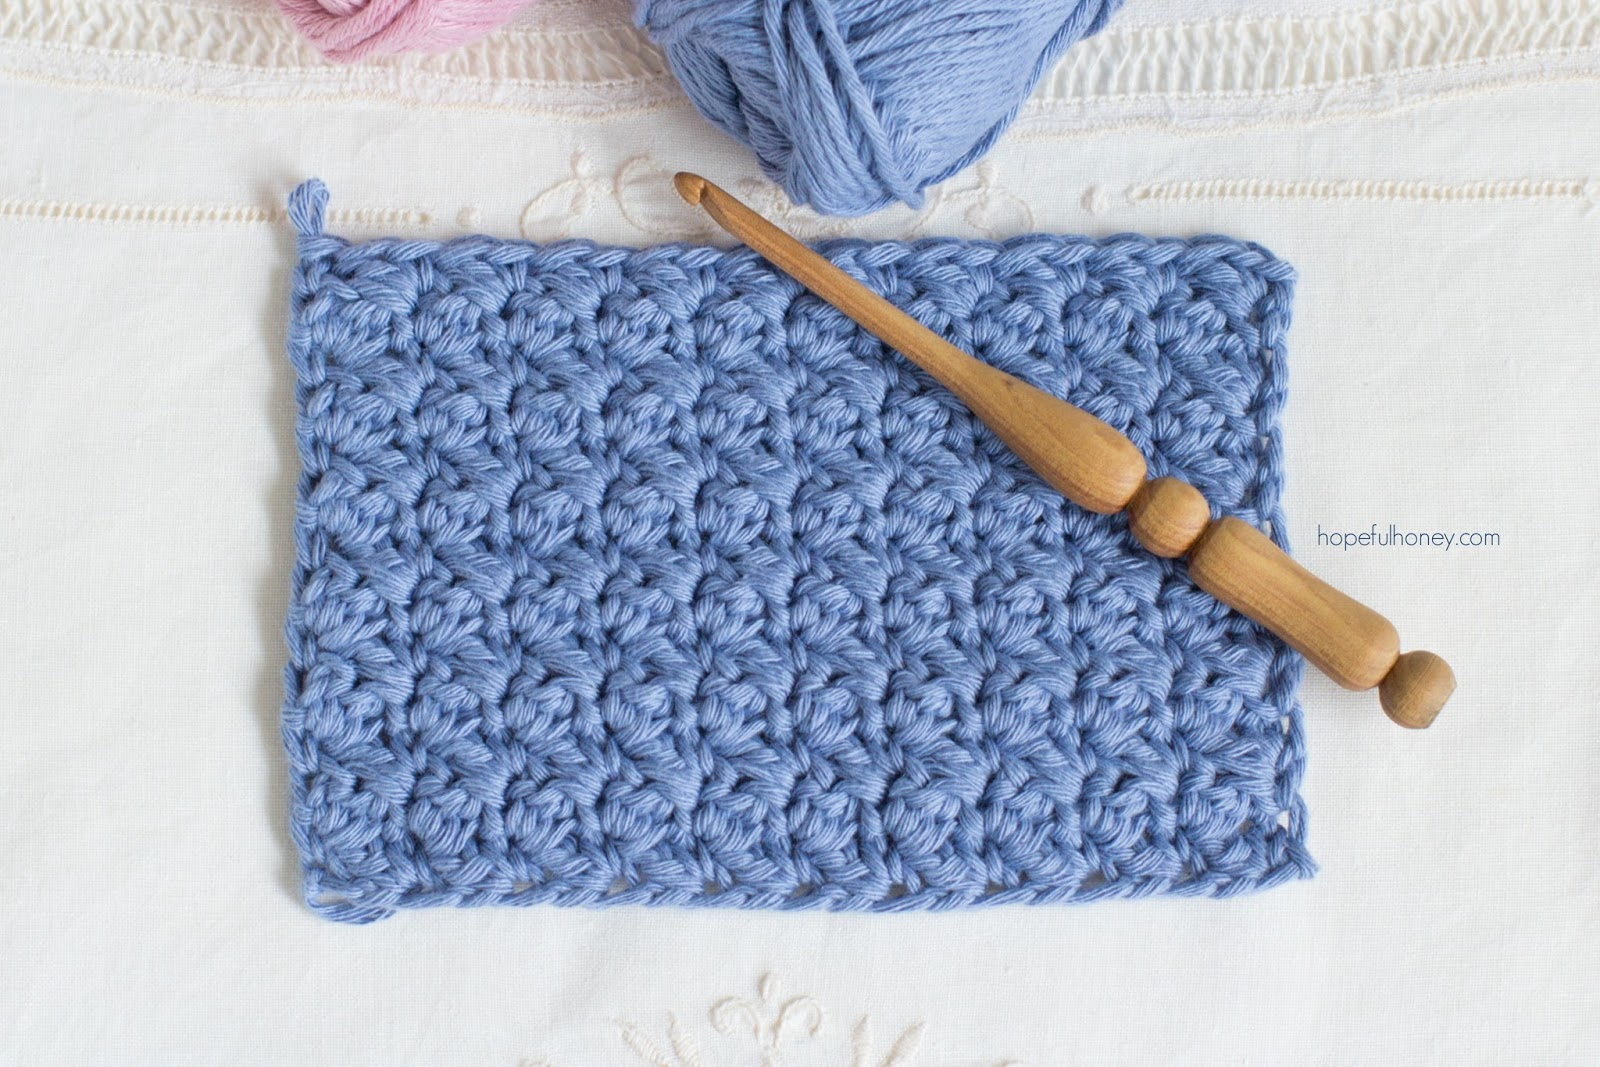 Hopeful Honey Craft, Crochet, Create: How To: Crochet The Suzette ...